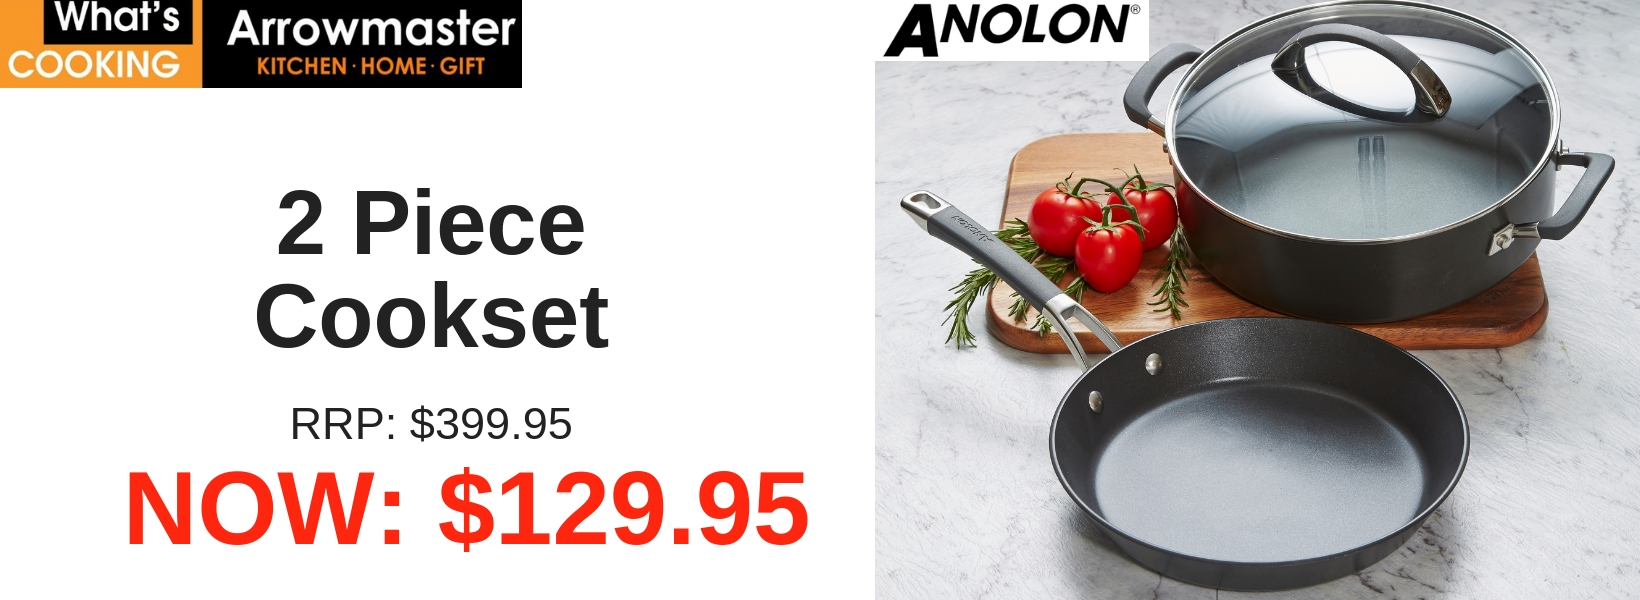 Anolono 2 Piece banner